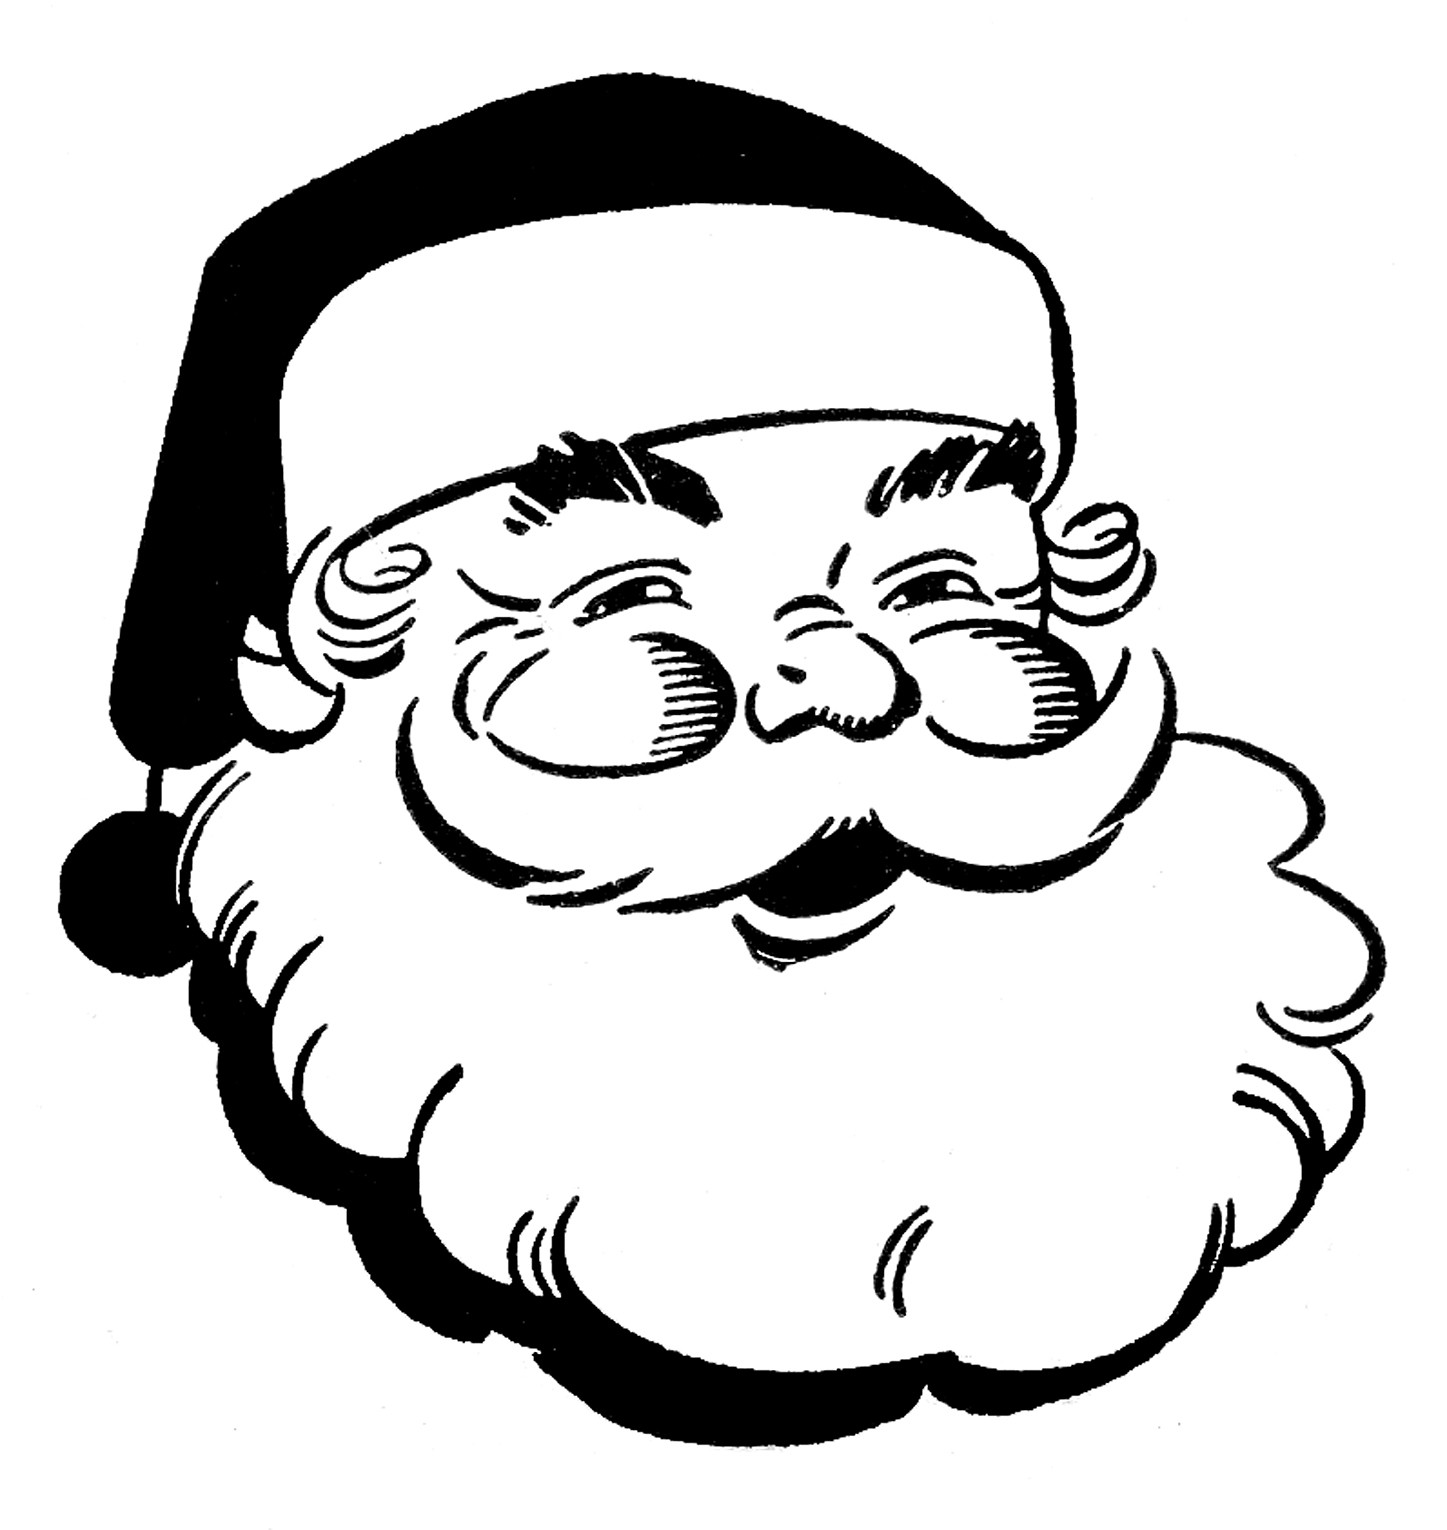 Christmas Black And White Table Clipart -Christmas black and white table clipart black and white-7